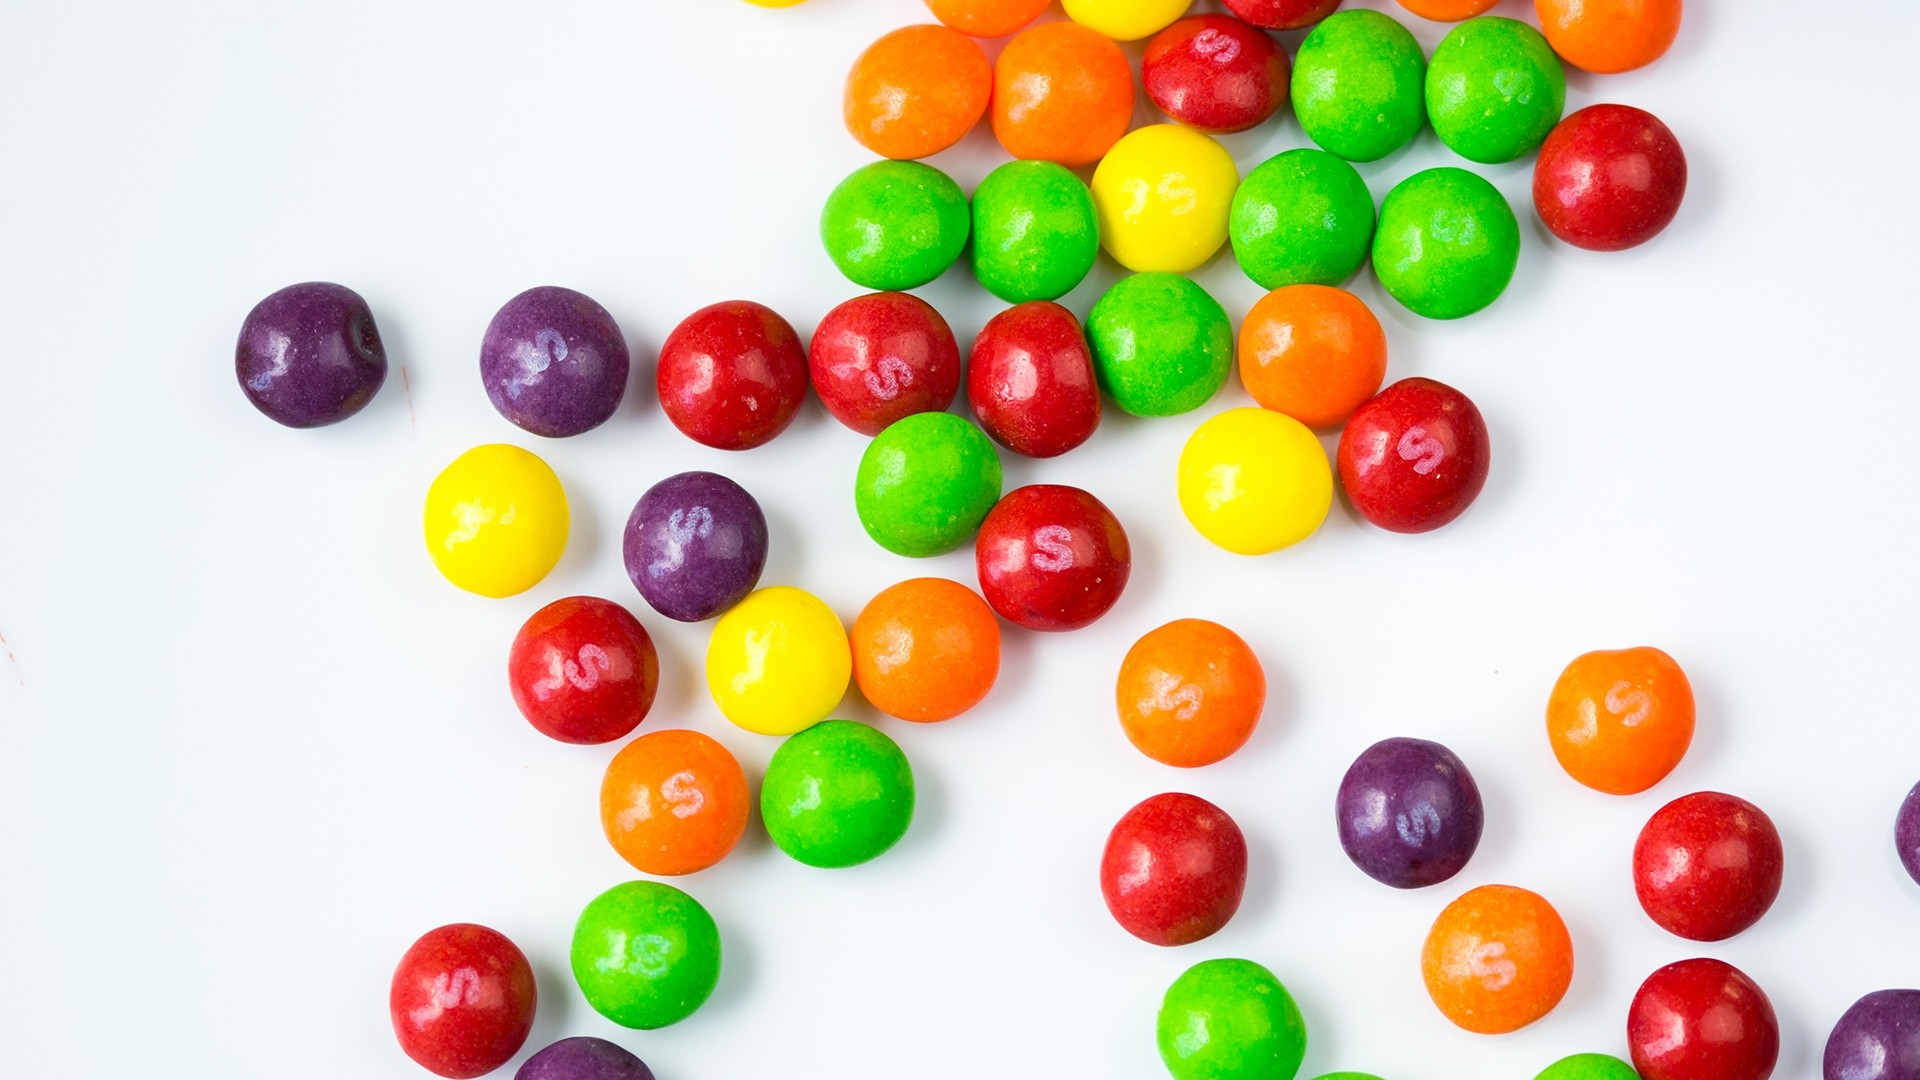 Skittles wallpaper picture hd